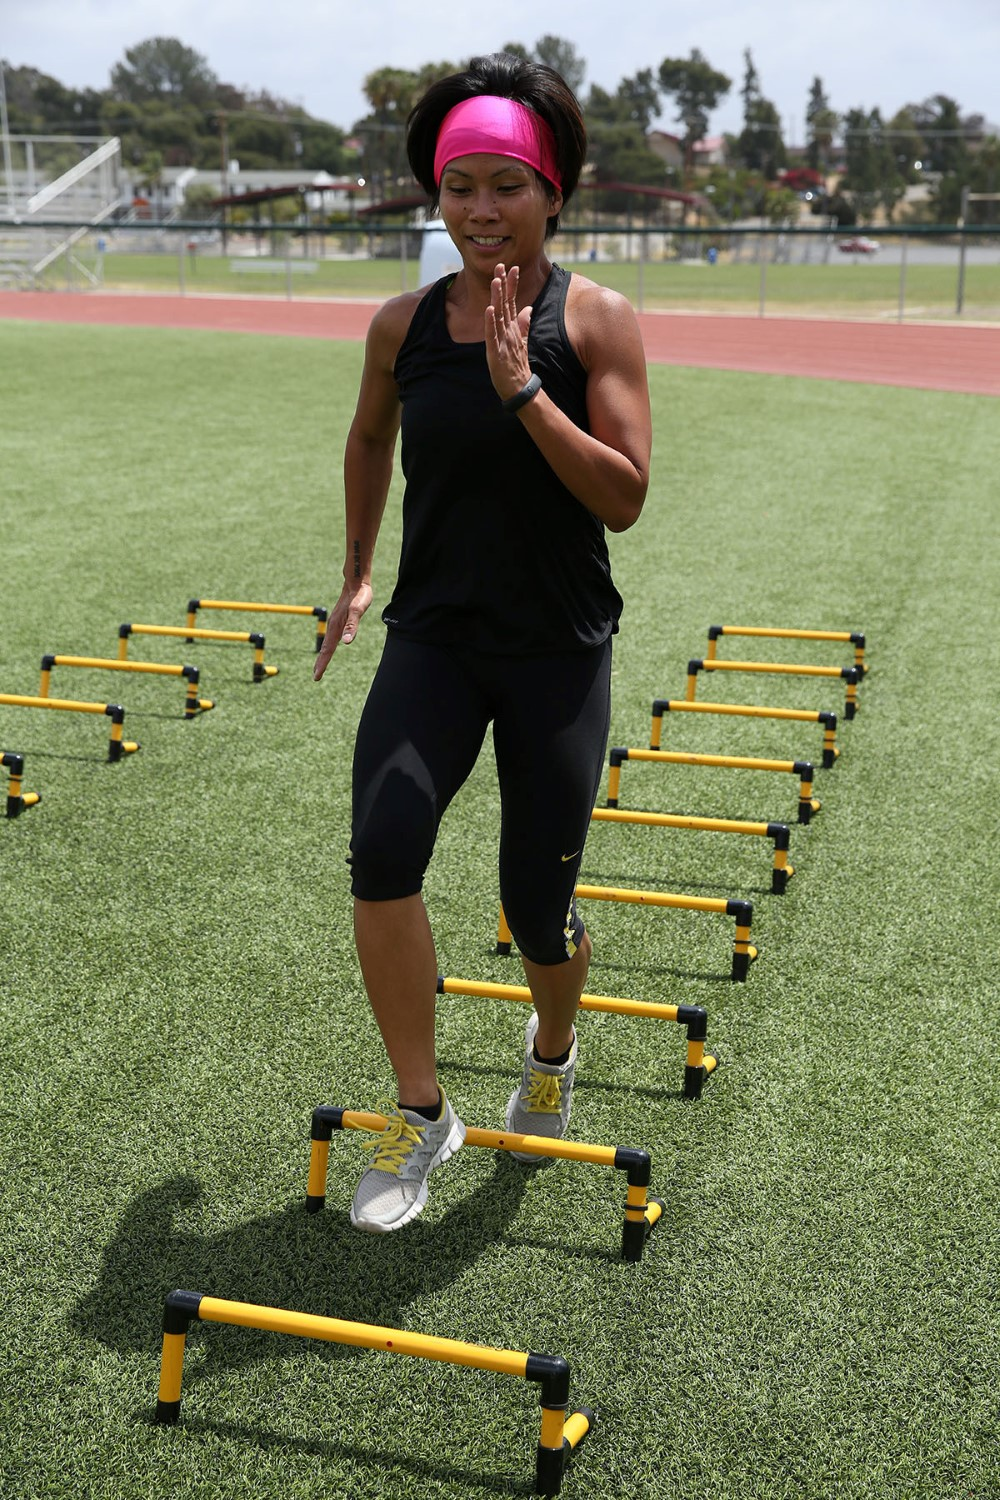 Agility for Physical Fitness and Sports